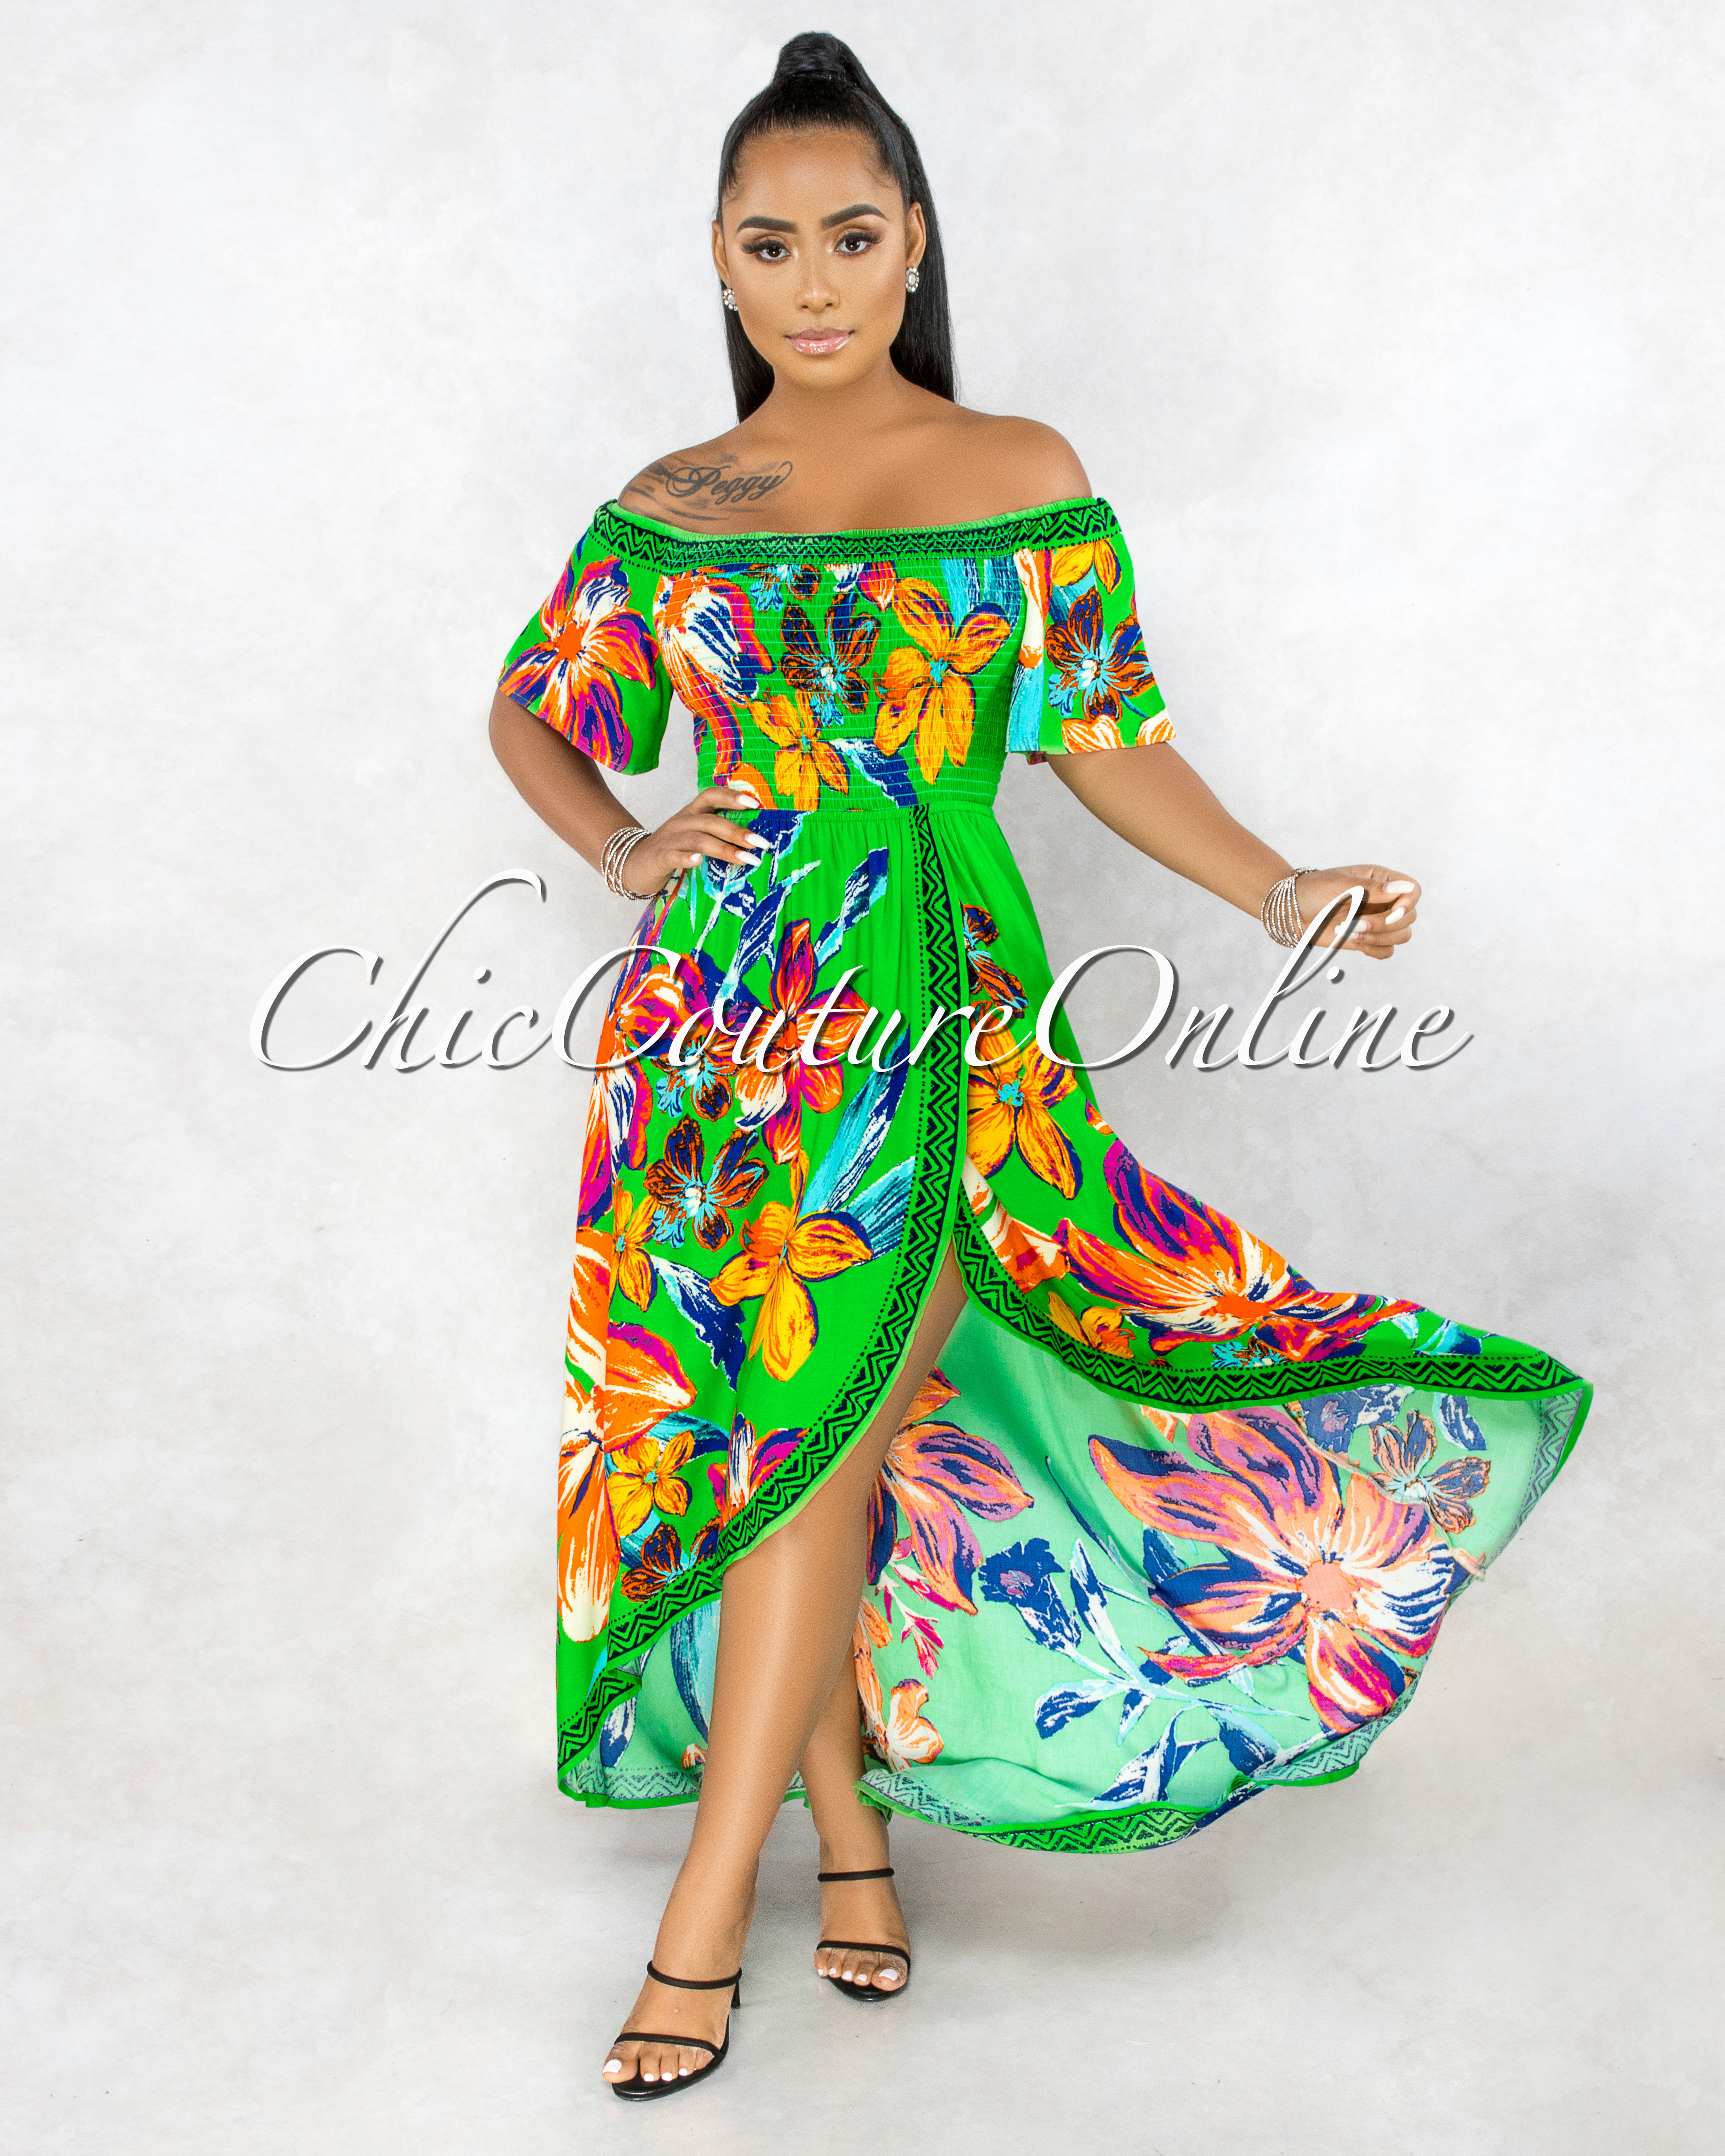 Yalena Kelly Green Floral Smocked Top High-Low Maxi Dress